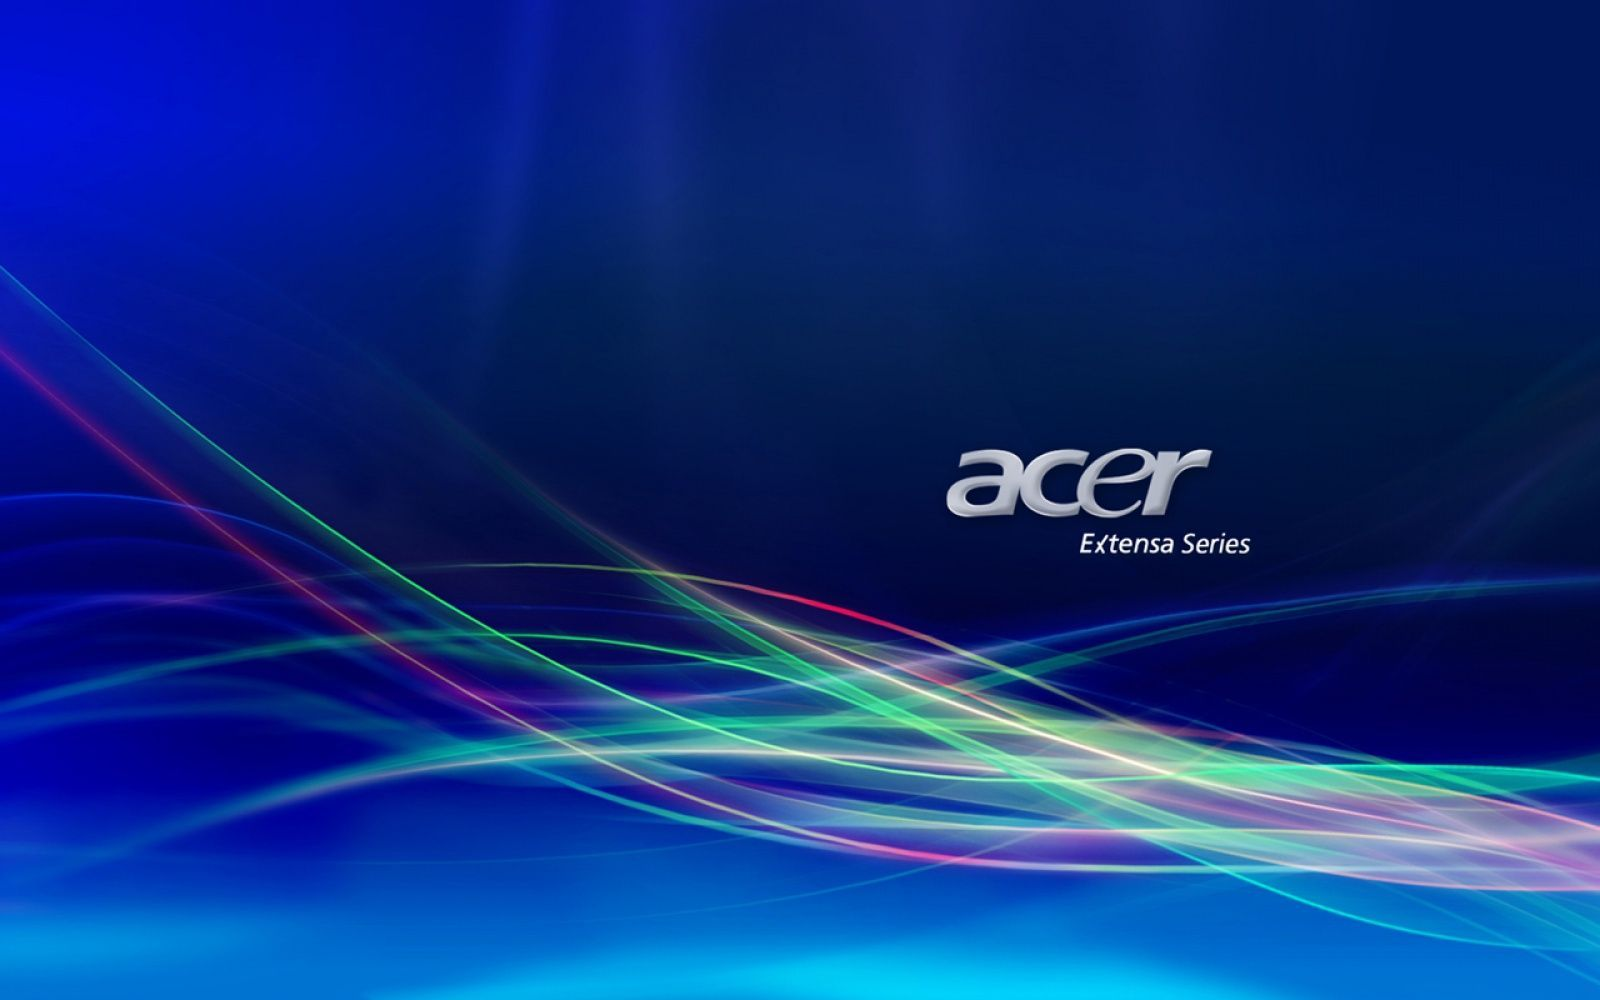 Acer Aspire One Wallpapers Wallpaper 19201080 Logo Circuit Board Animation 11 By Motionworks Videohive 35 Adorable